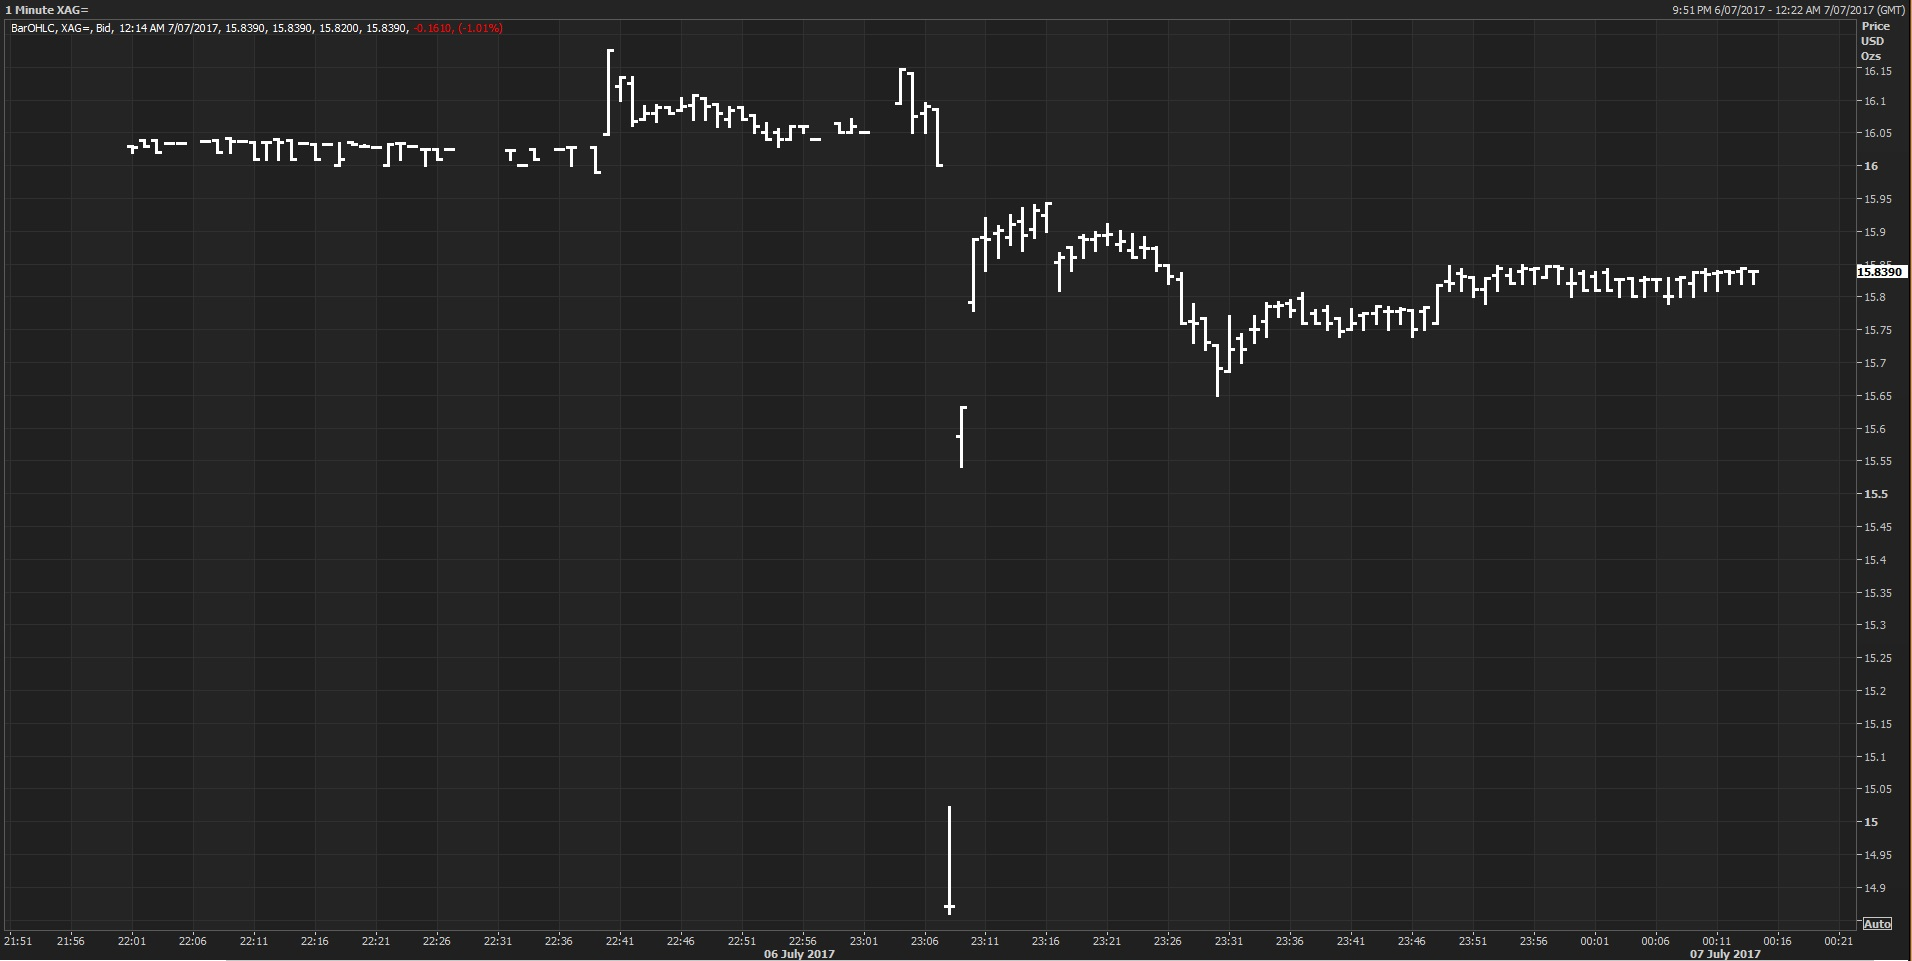 Silver Flash Crash